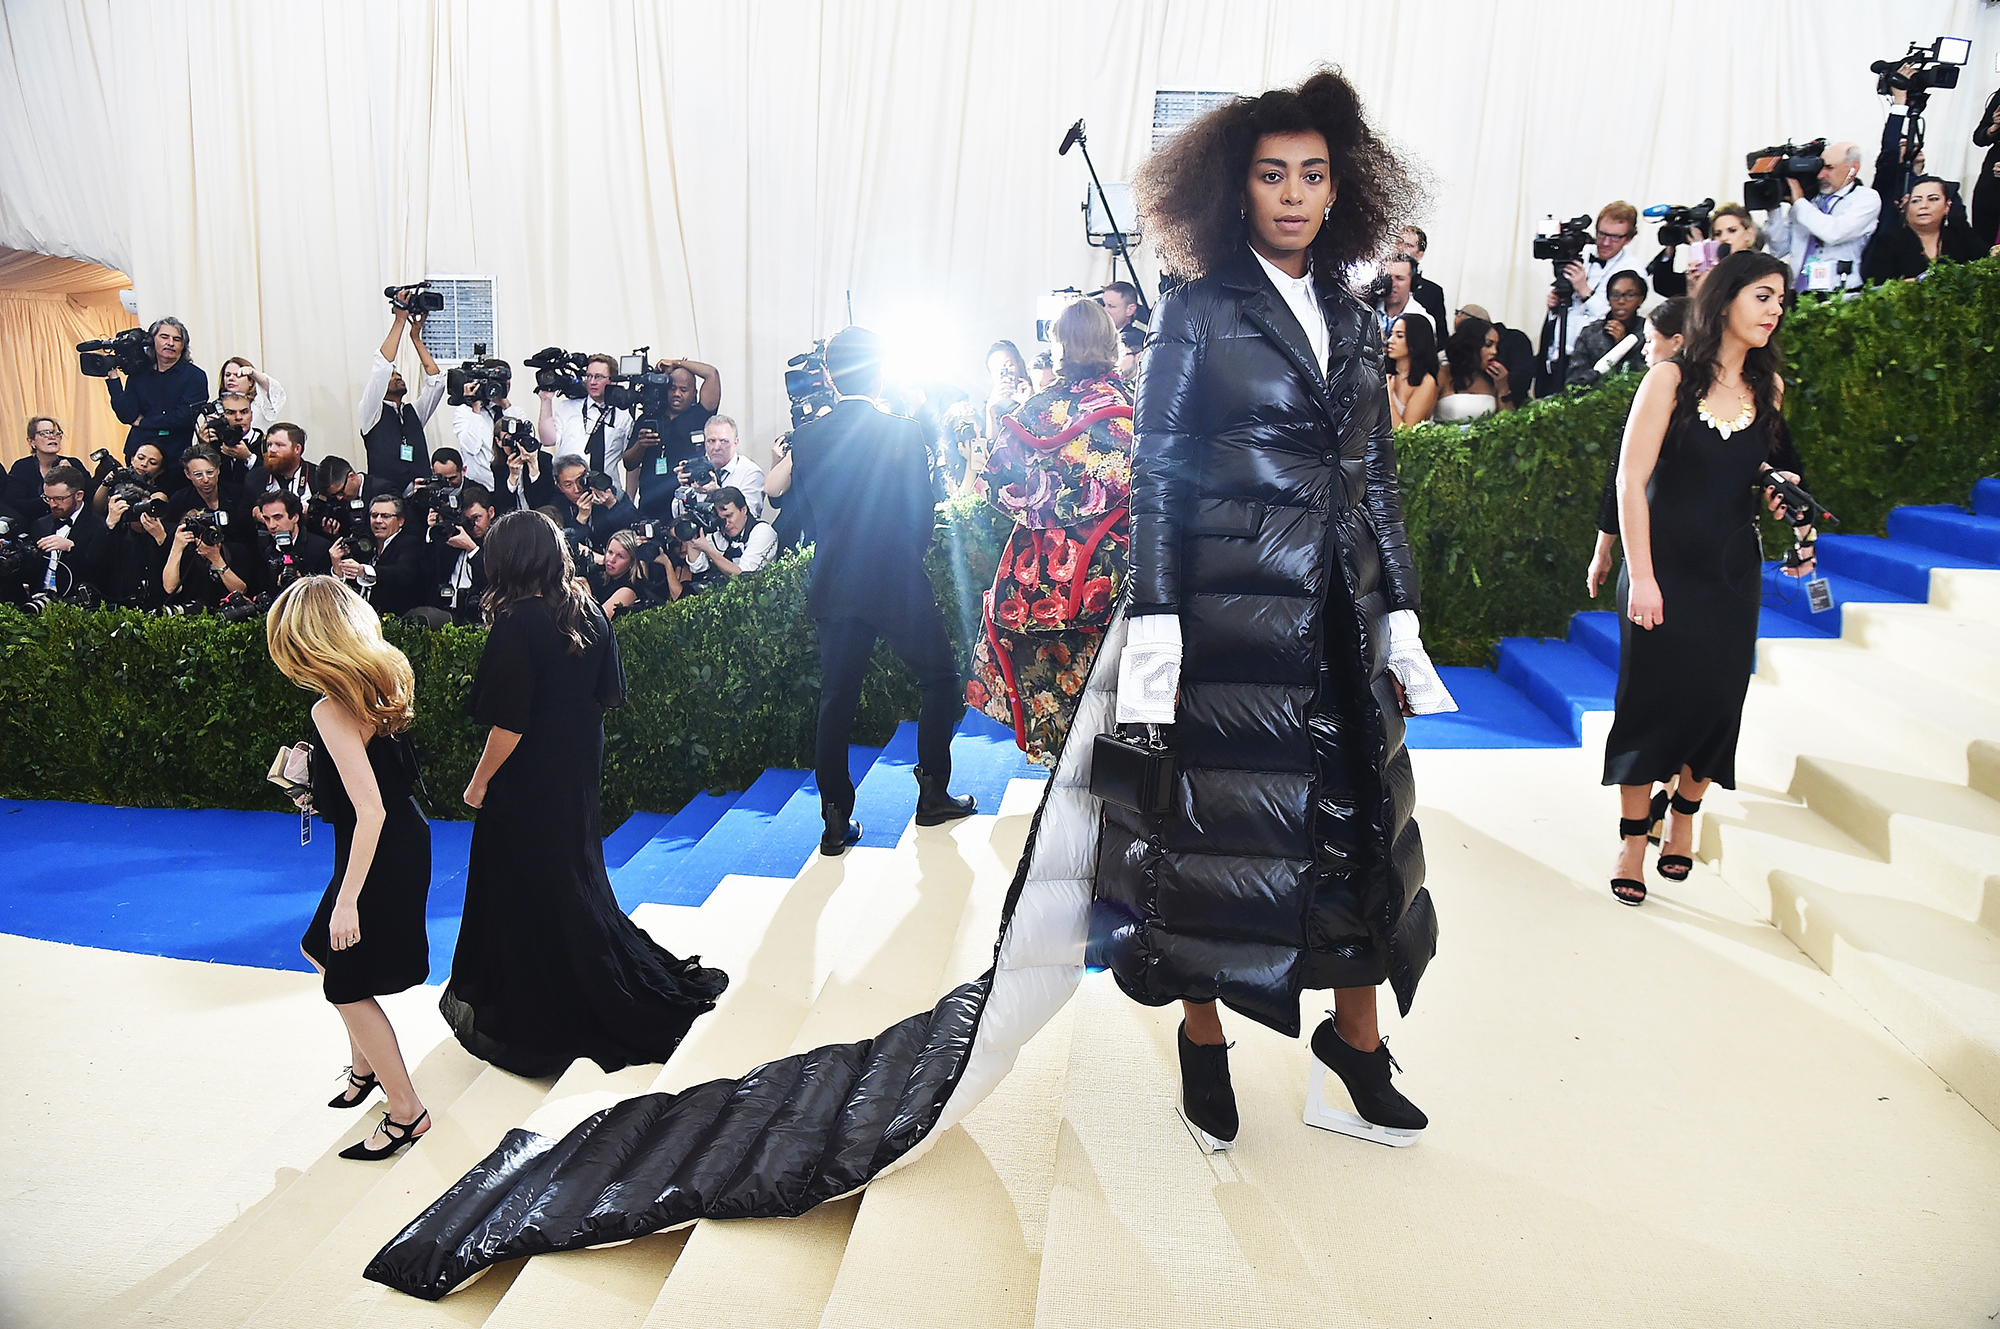 NEW YORK, NY - MAY 01:  Solange attends the  Rei Kawakubo/Comme des Garcons: Art Of The In-Between  Costume Institute Gala at Metropolitan Museum of Art on May 1, 2017 in New York City.  (Photo by Theo Wargo/Getty Images For US Weekly)